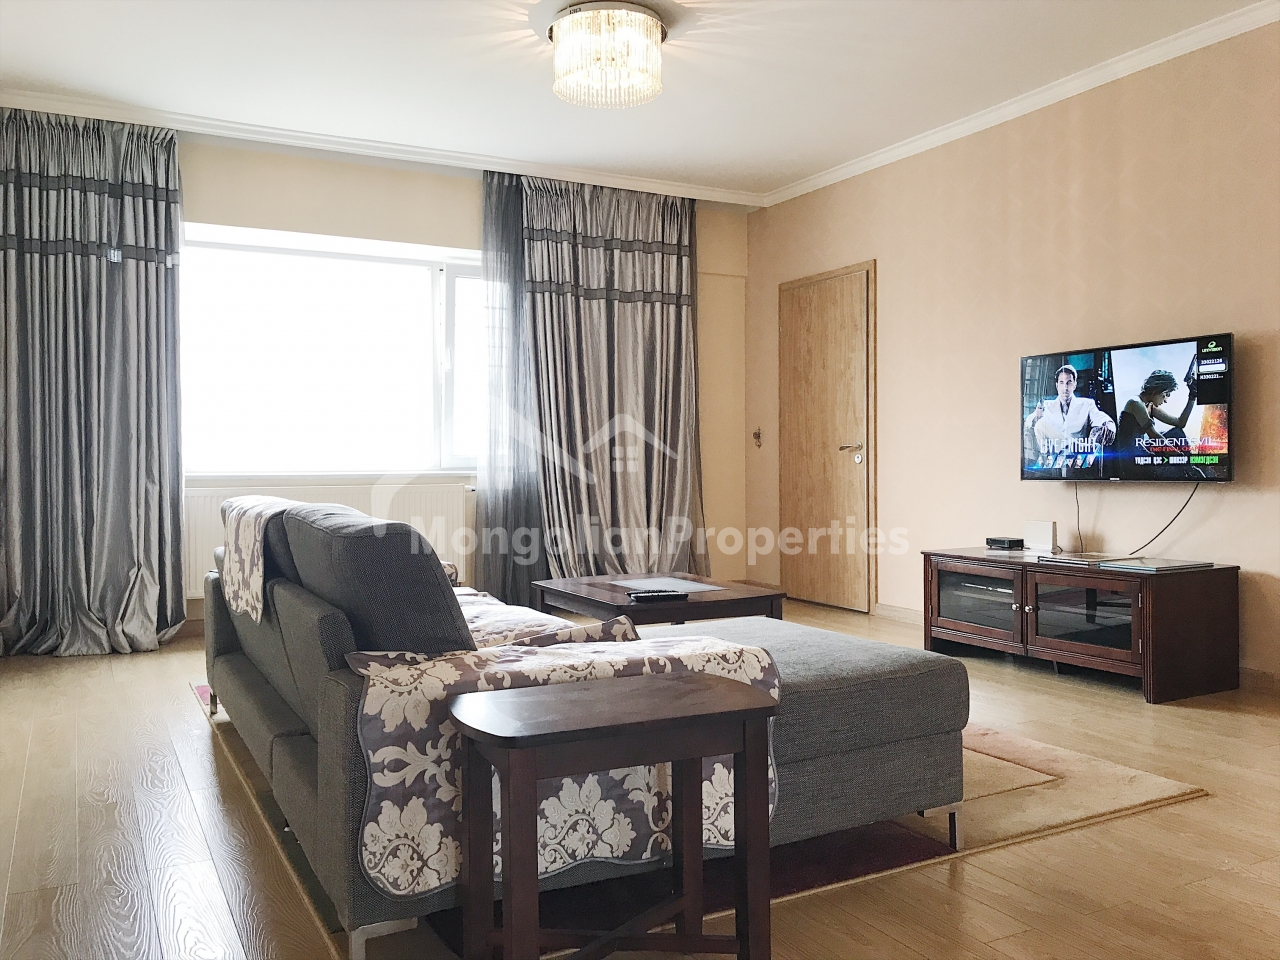 Beautiful 4 bedroom apartments is for rent at One Residence, near Shangrila hotel